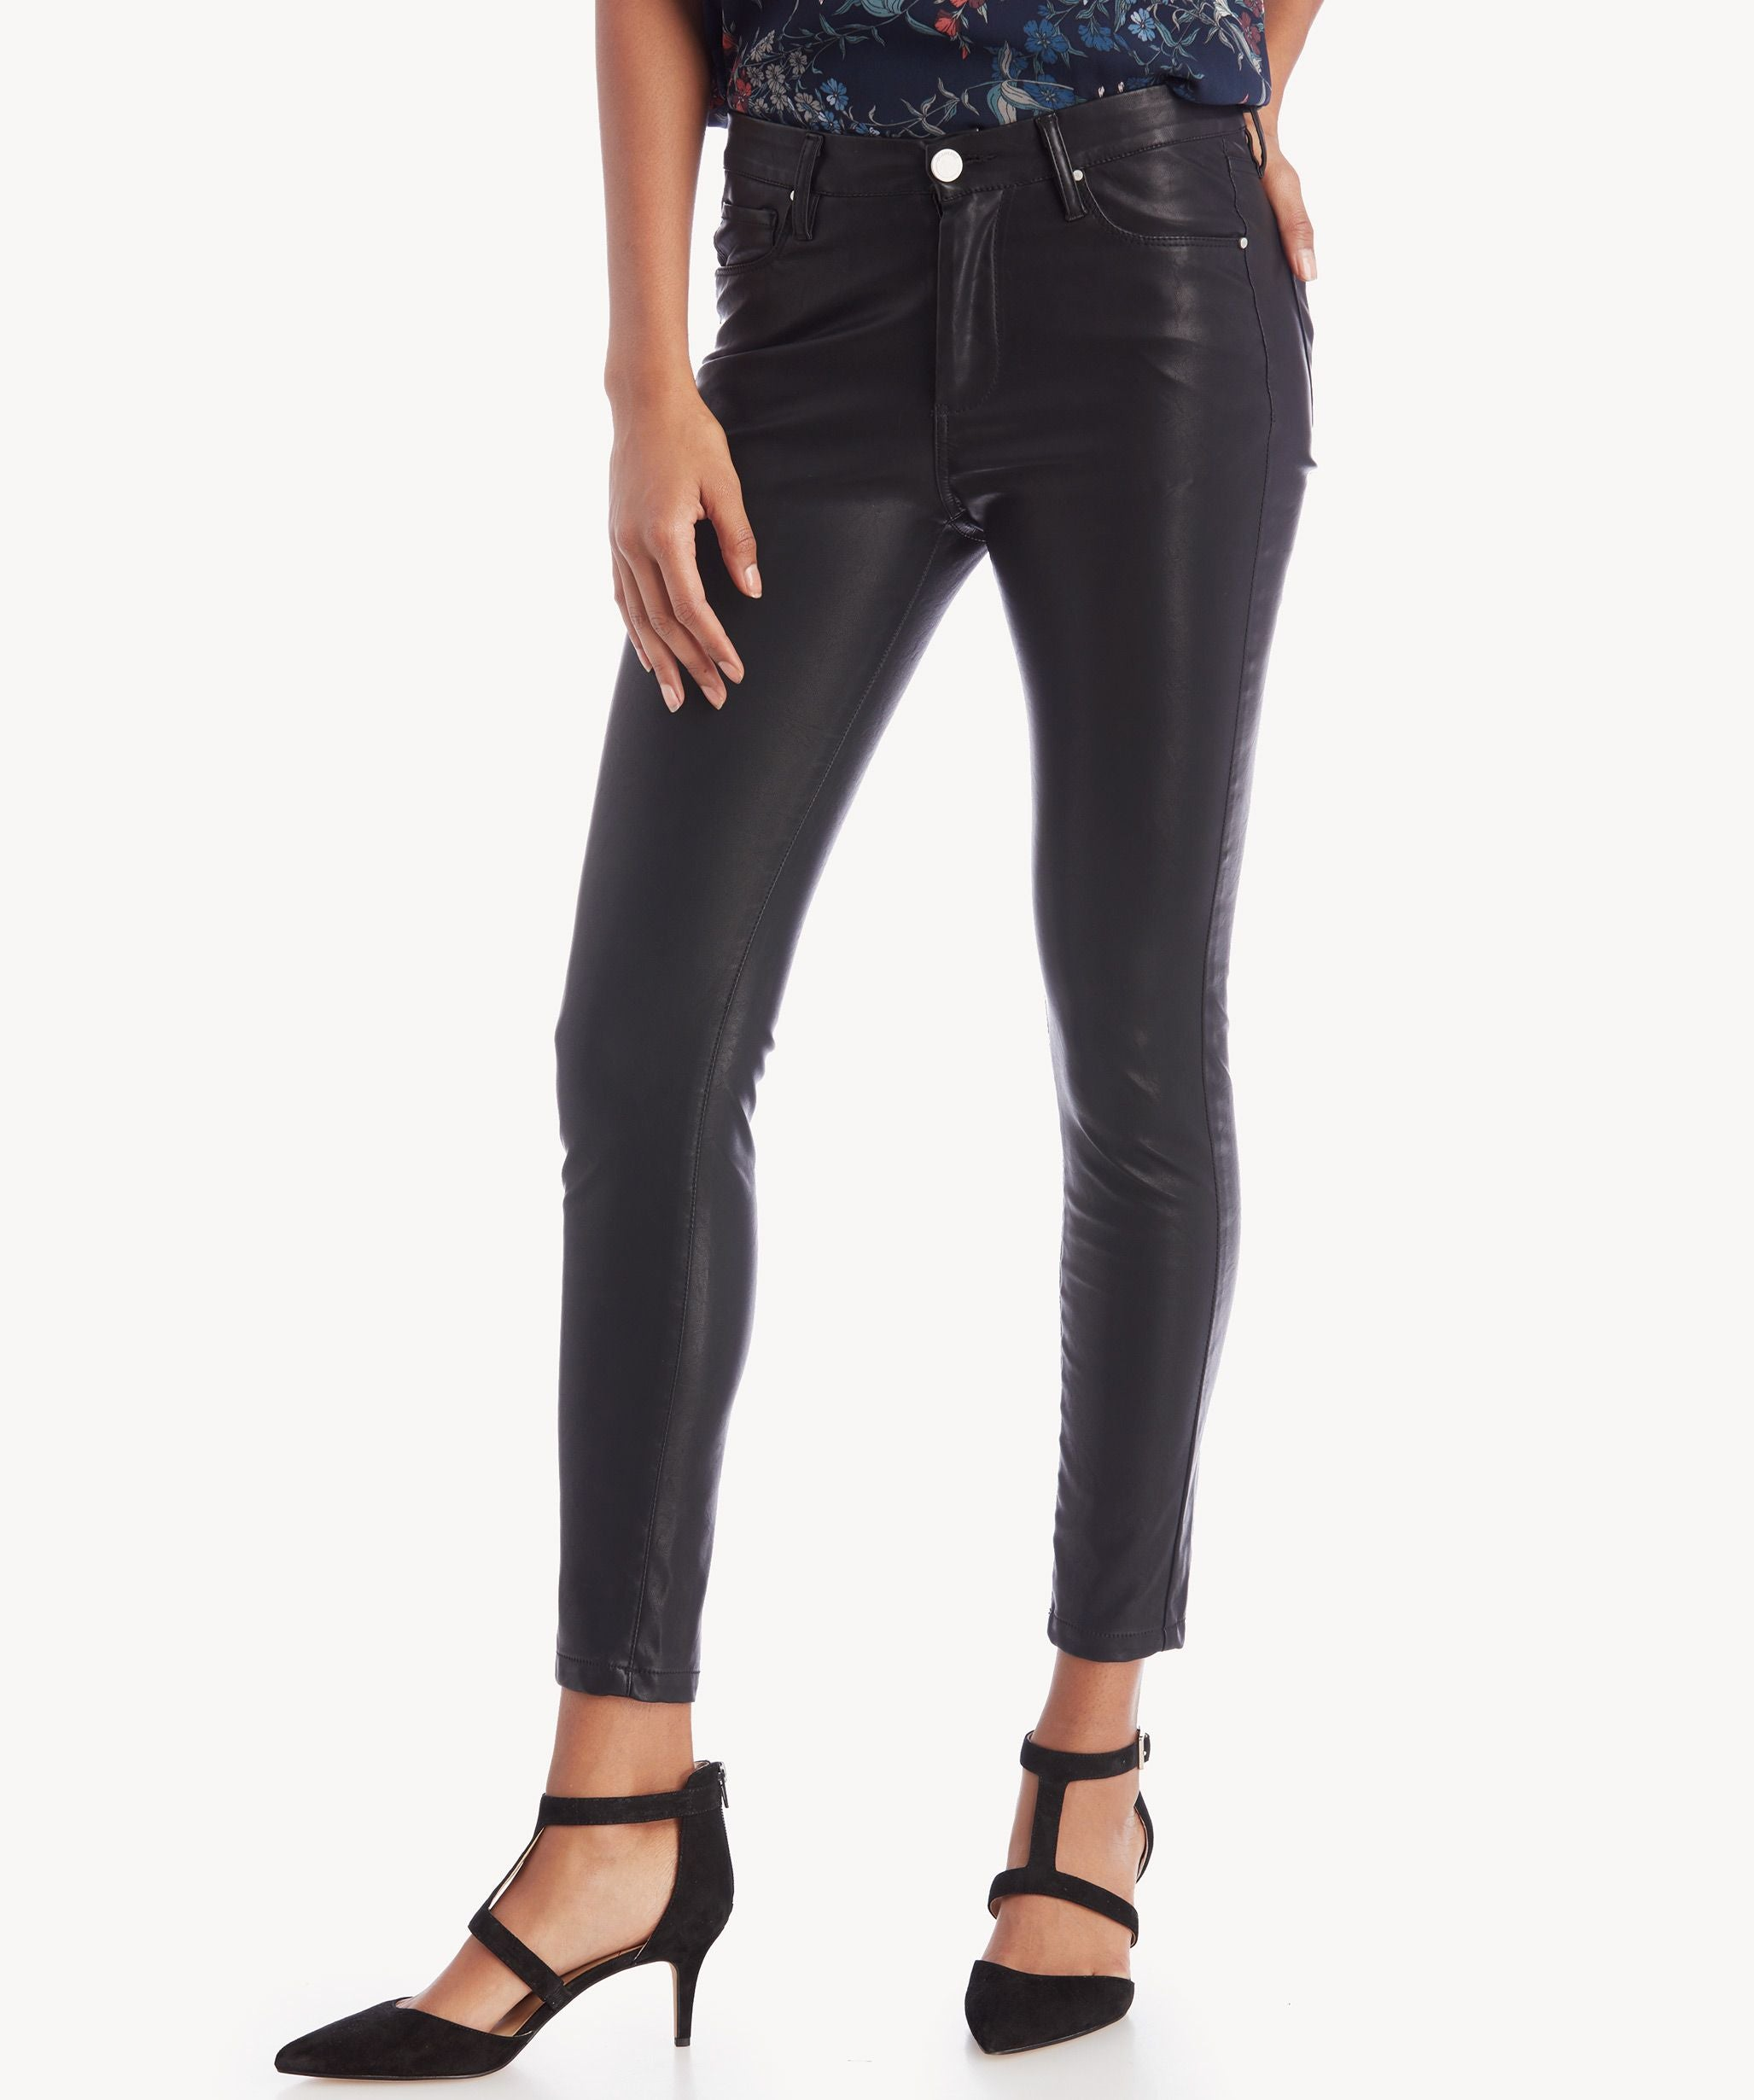 Blank NYC Faux Leather Pants Boom Bap